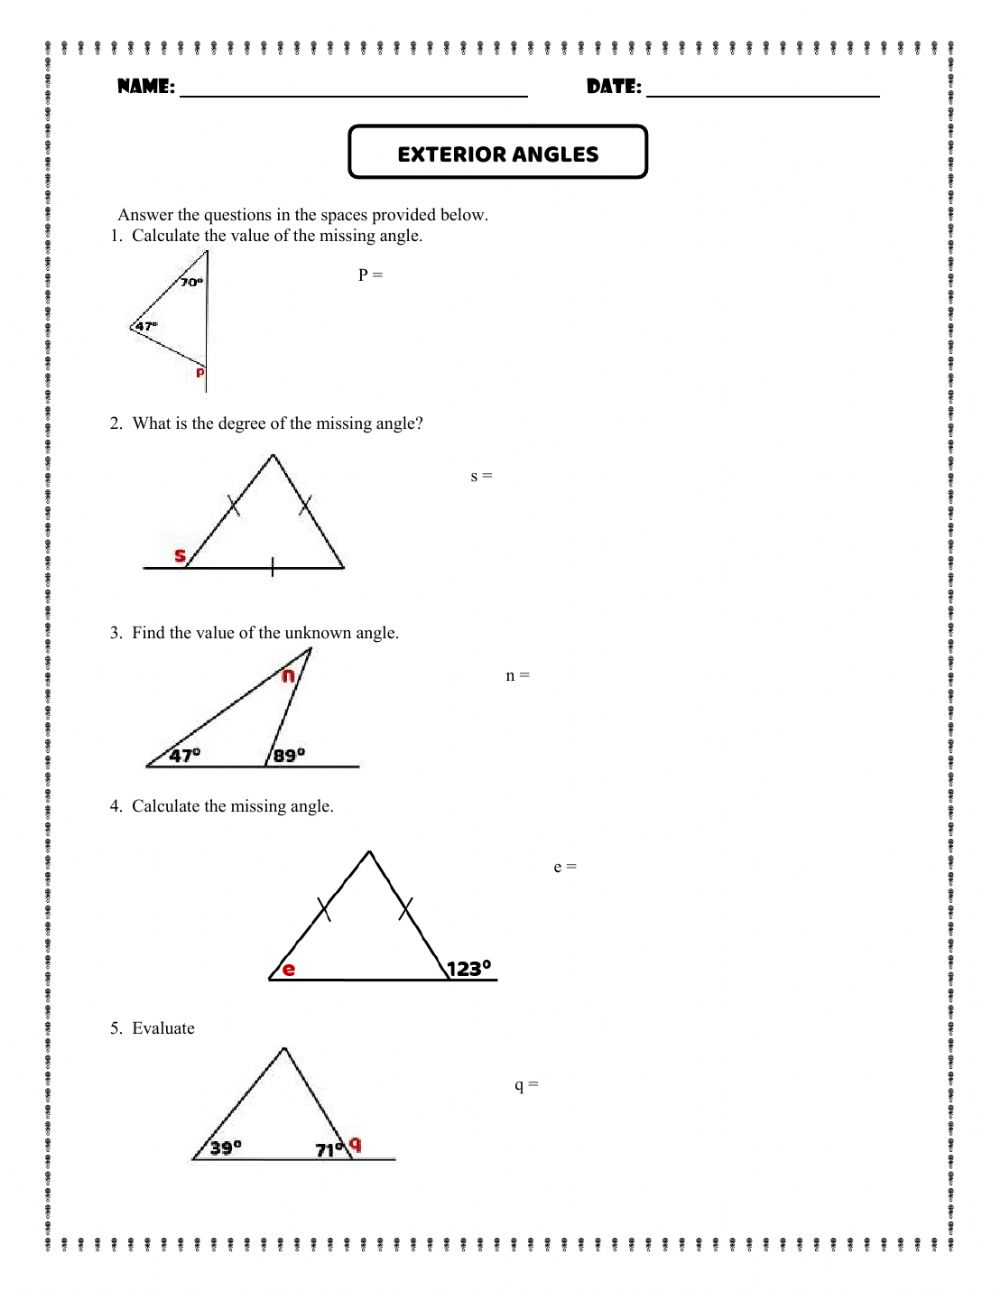 Exterior Angles worksheet In Triangle Angle Sum Worksheet